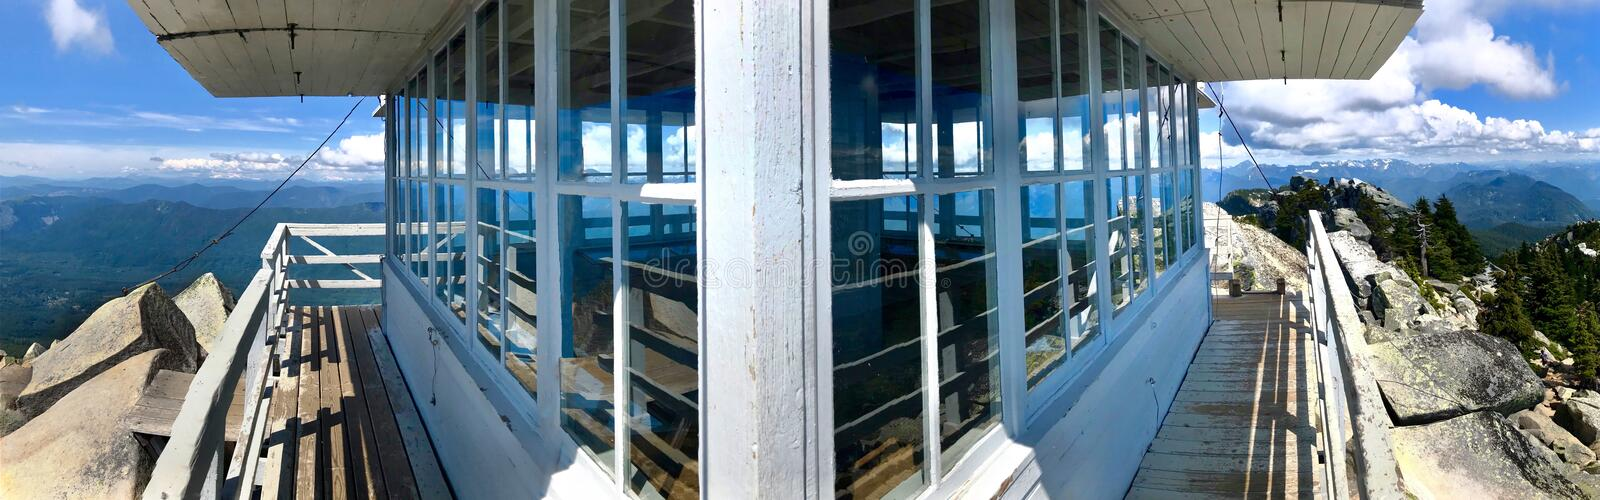 Fire lookout hut on Mount Pilchuck. Former fire lookout on mountain top near Seattle and Everett with expansive view. Washington. United States of America royalty free stock photography